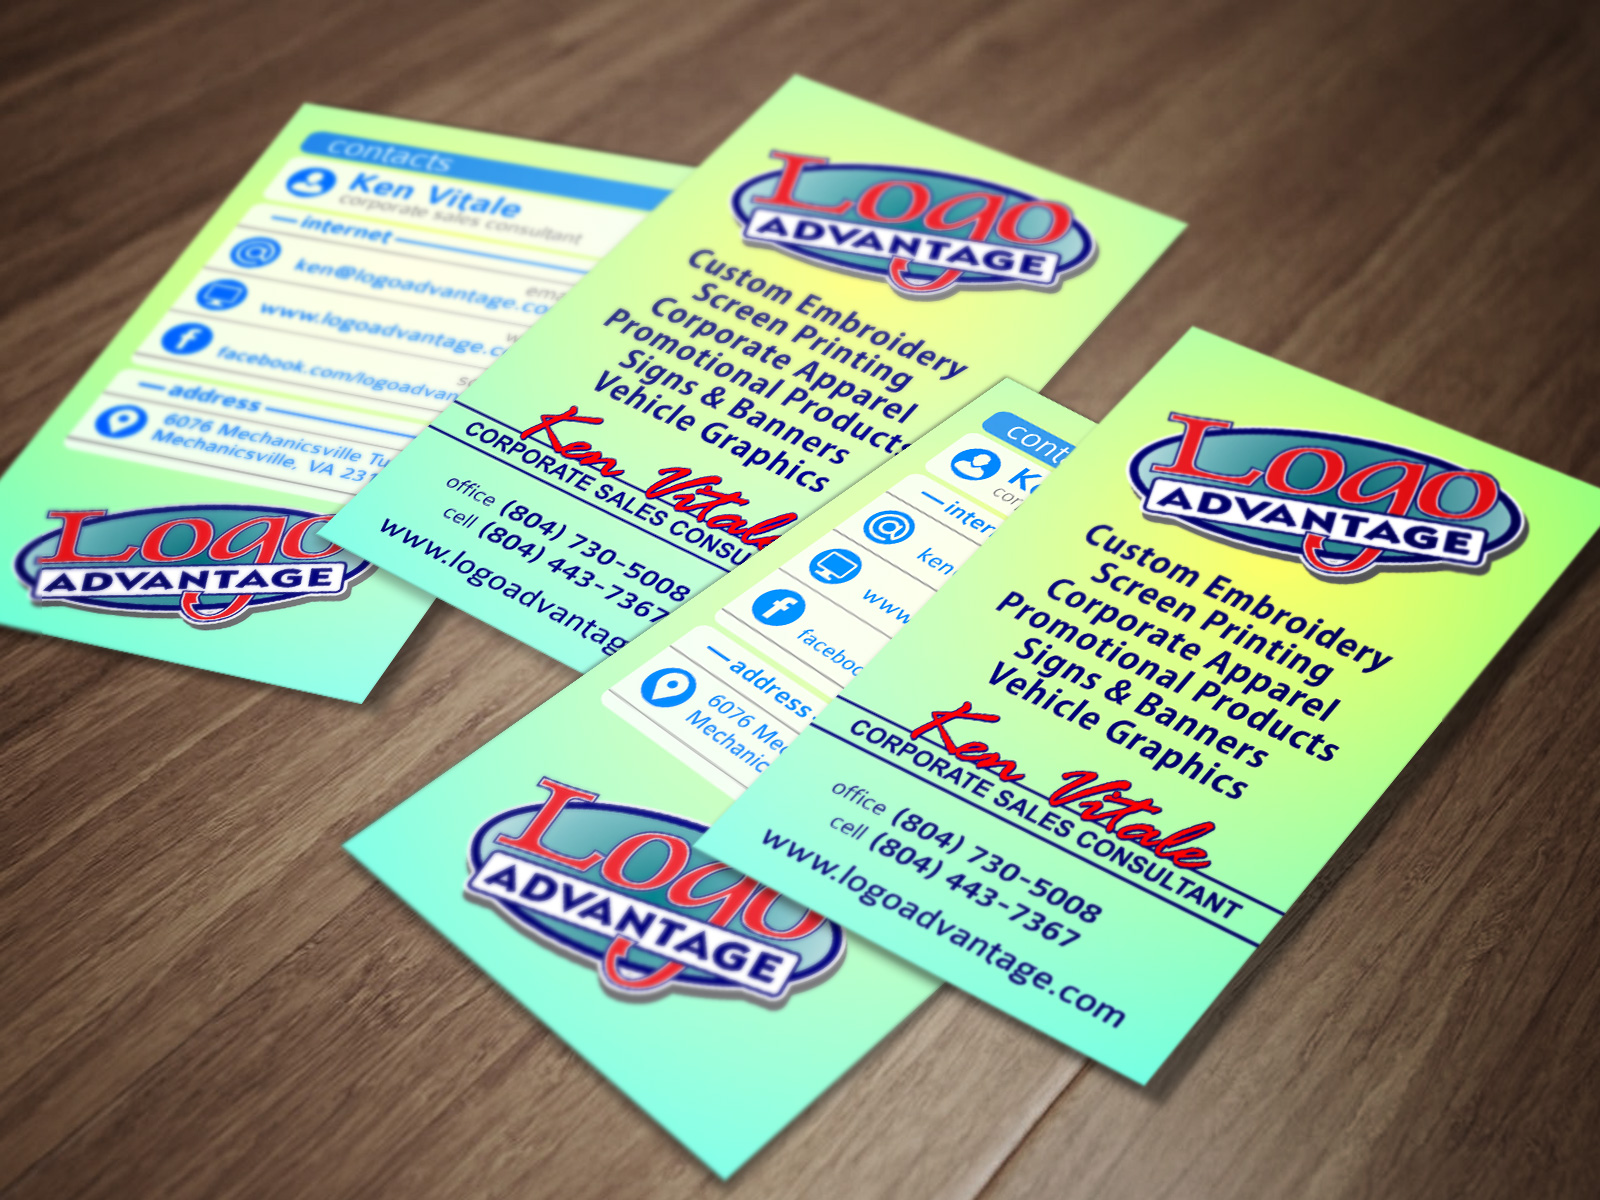 Lakeview Western Wear Business Cards - Logo Advantage